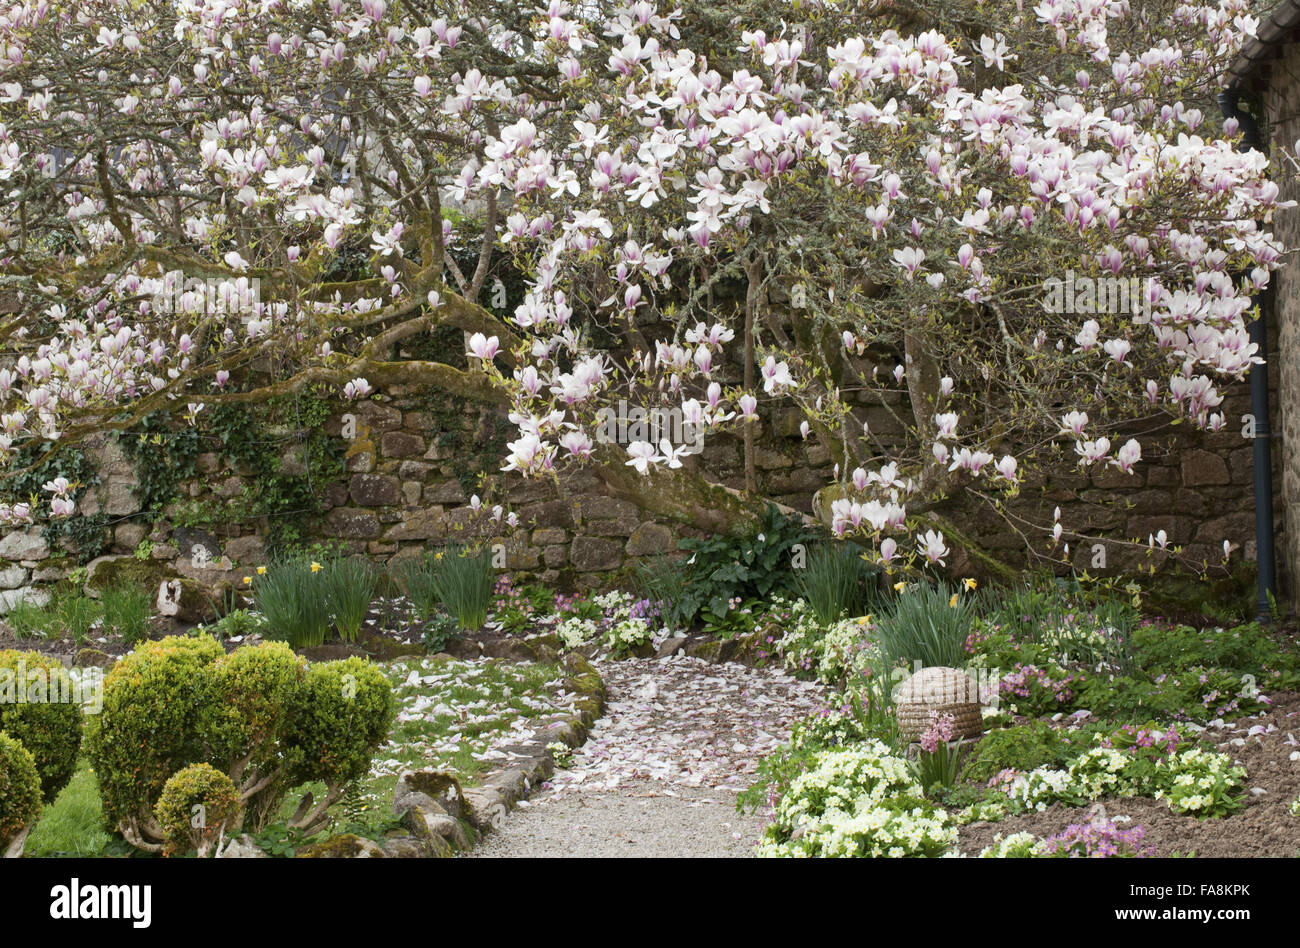 Old magnolia tree in blossom and primroses in spring at Godolphin ...